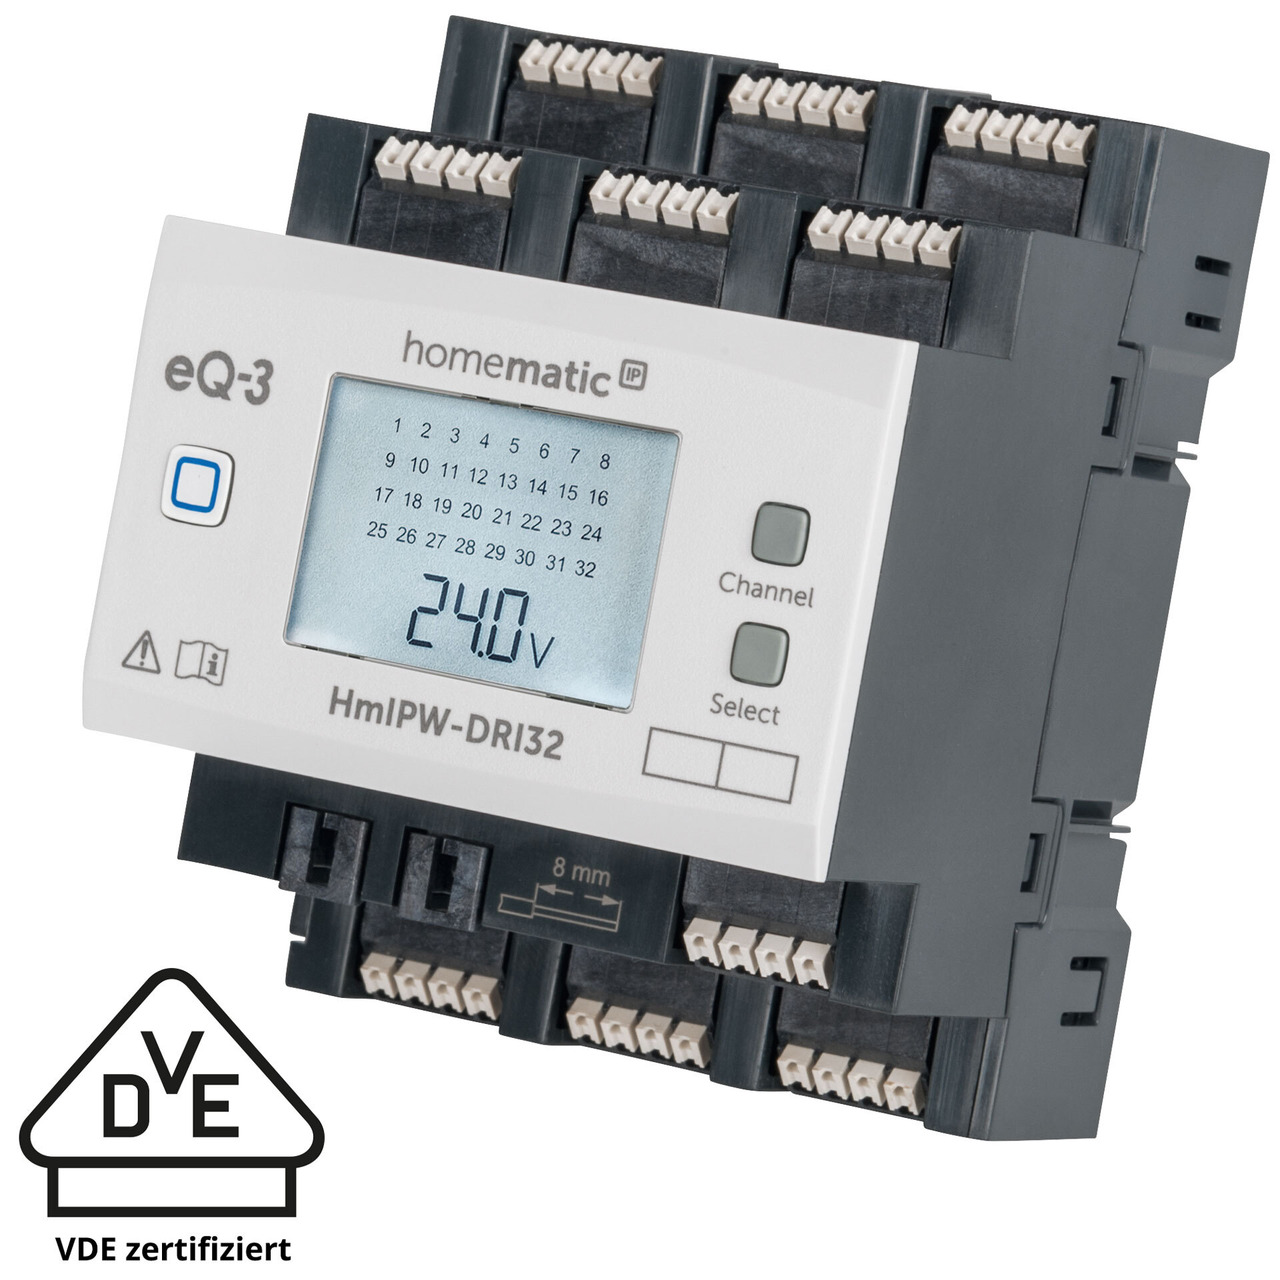 Homematic IP Wired Smart Home 32-fach-Eingangsmodul HmIPW-DRI32- VDE zertifiziert